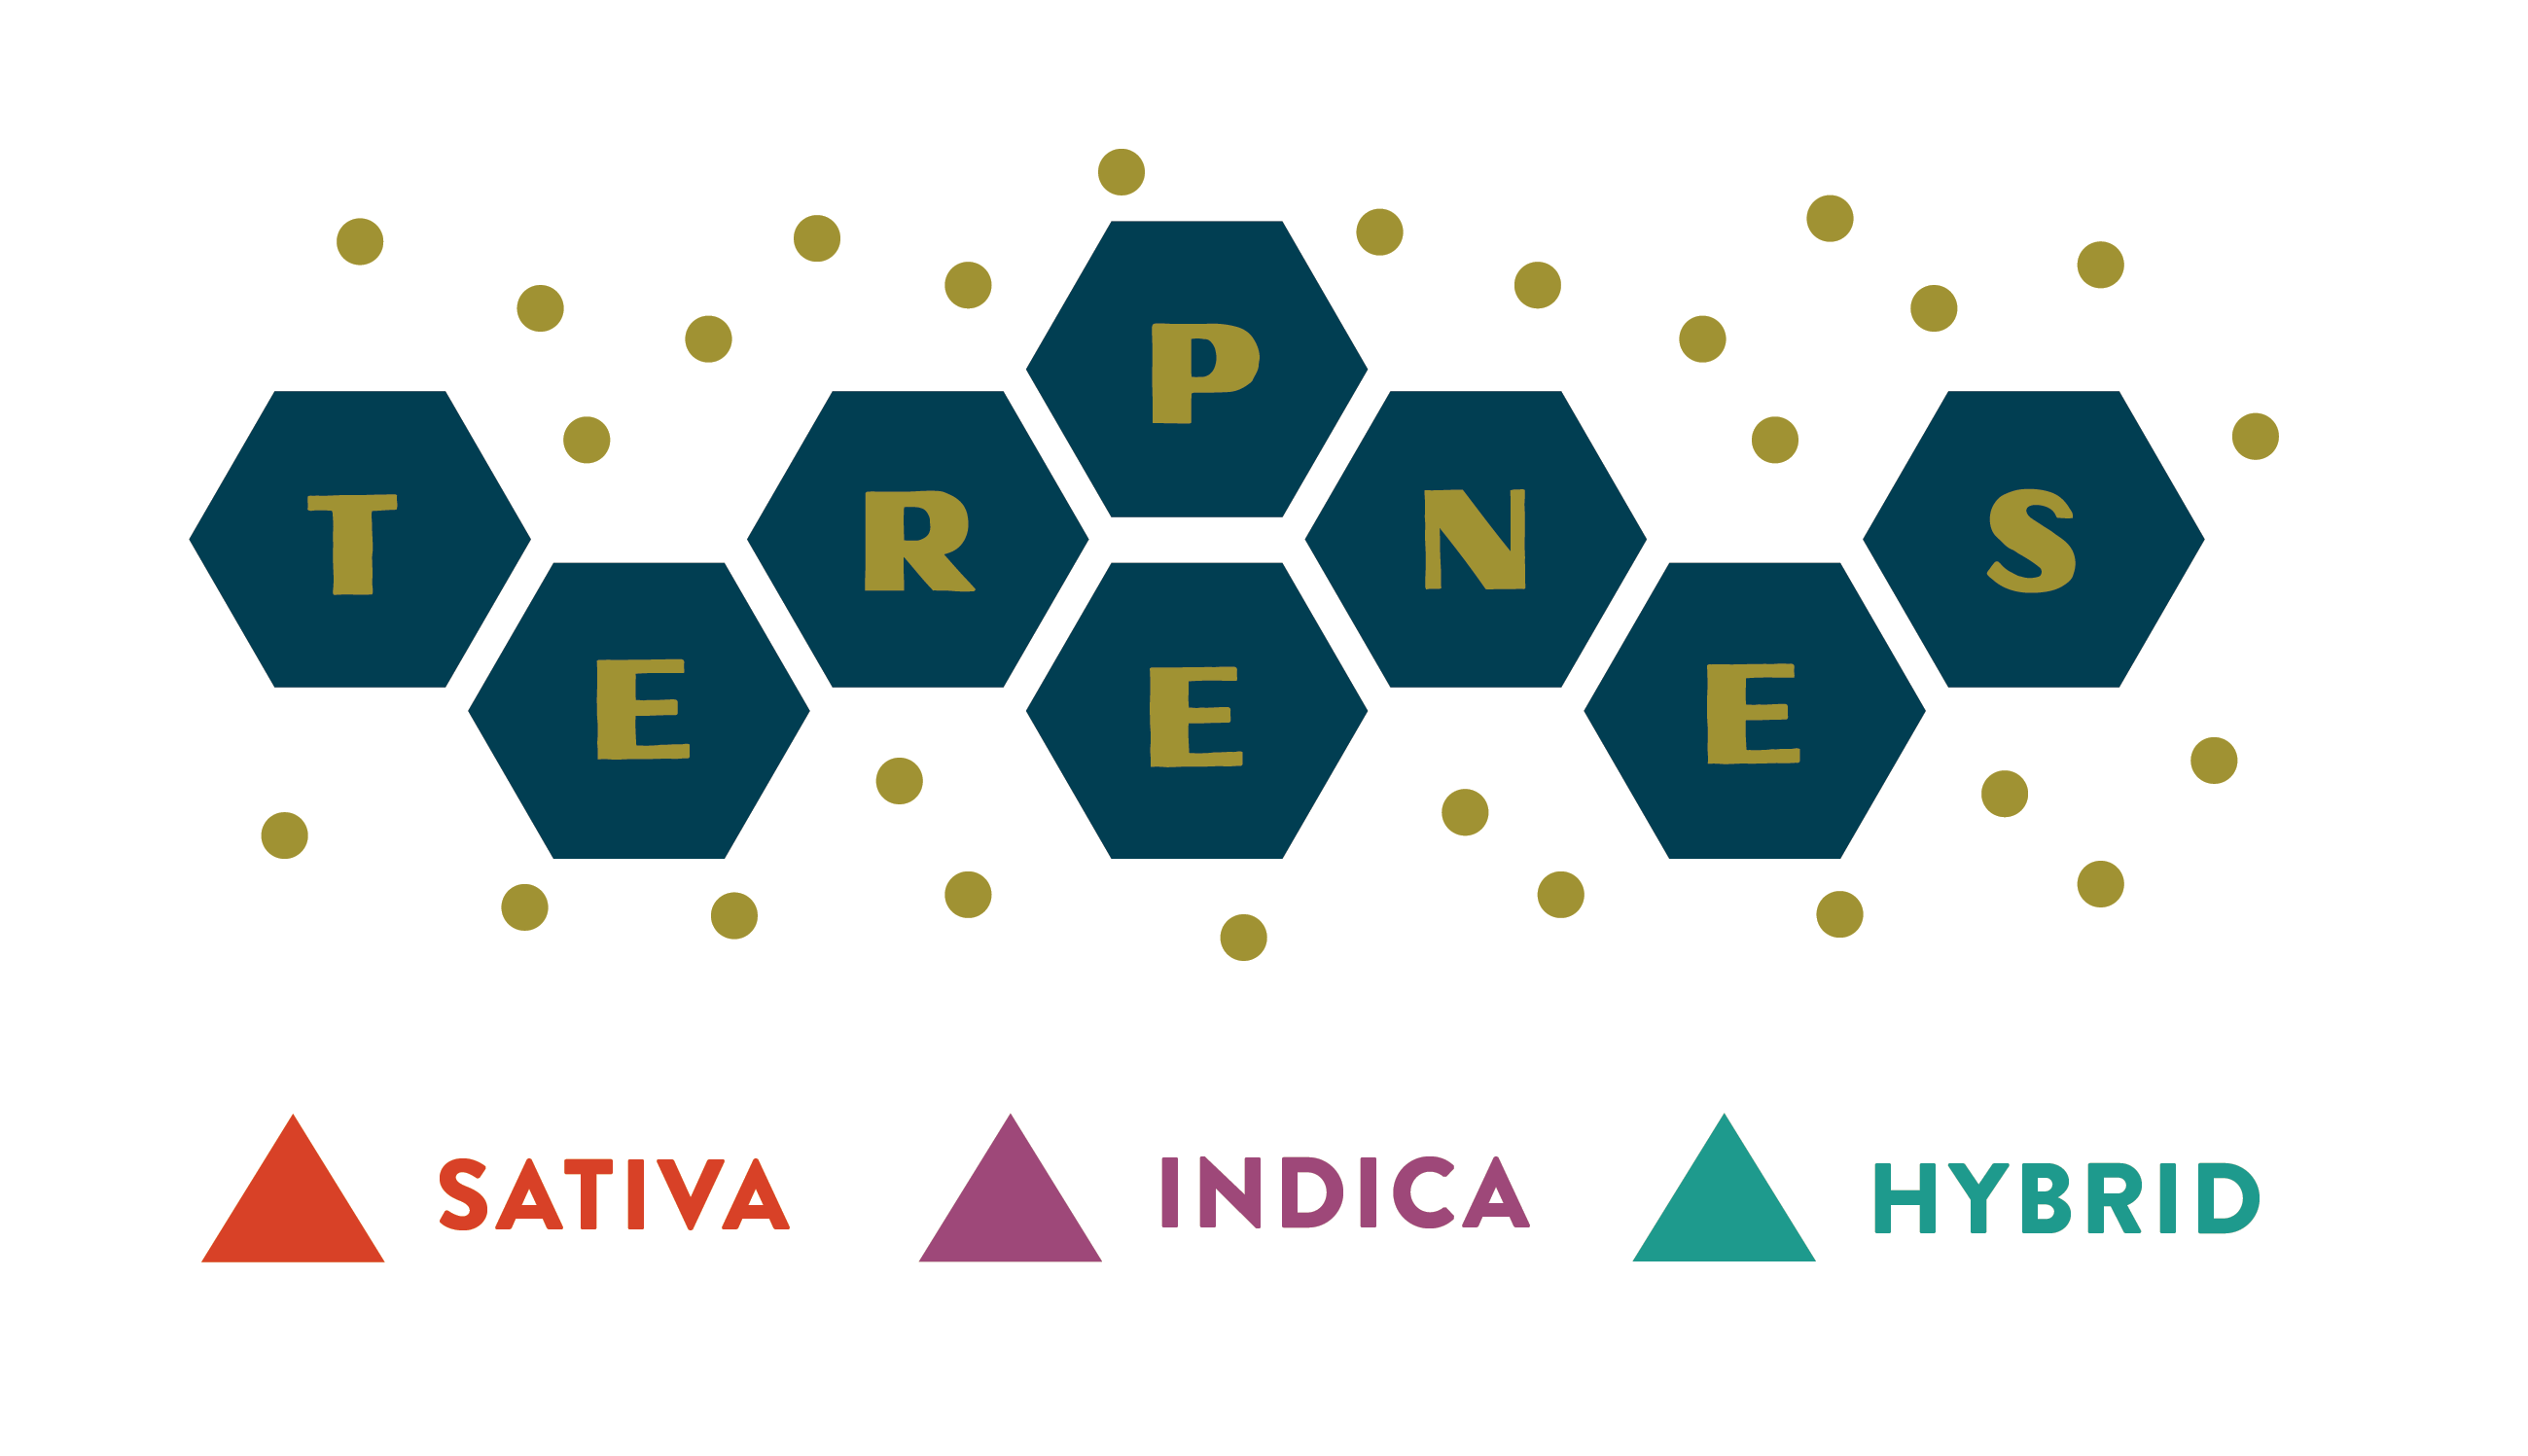 Terpene diagram header: Sativa, Indica, Hybrid